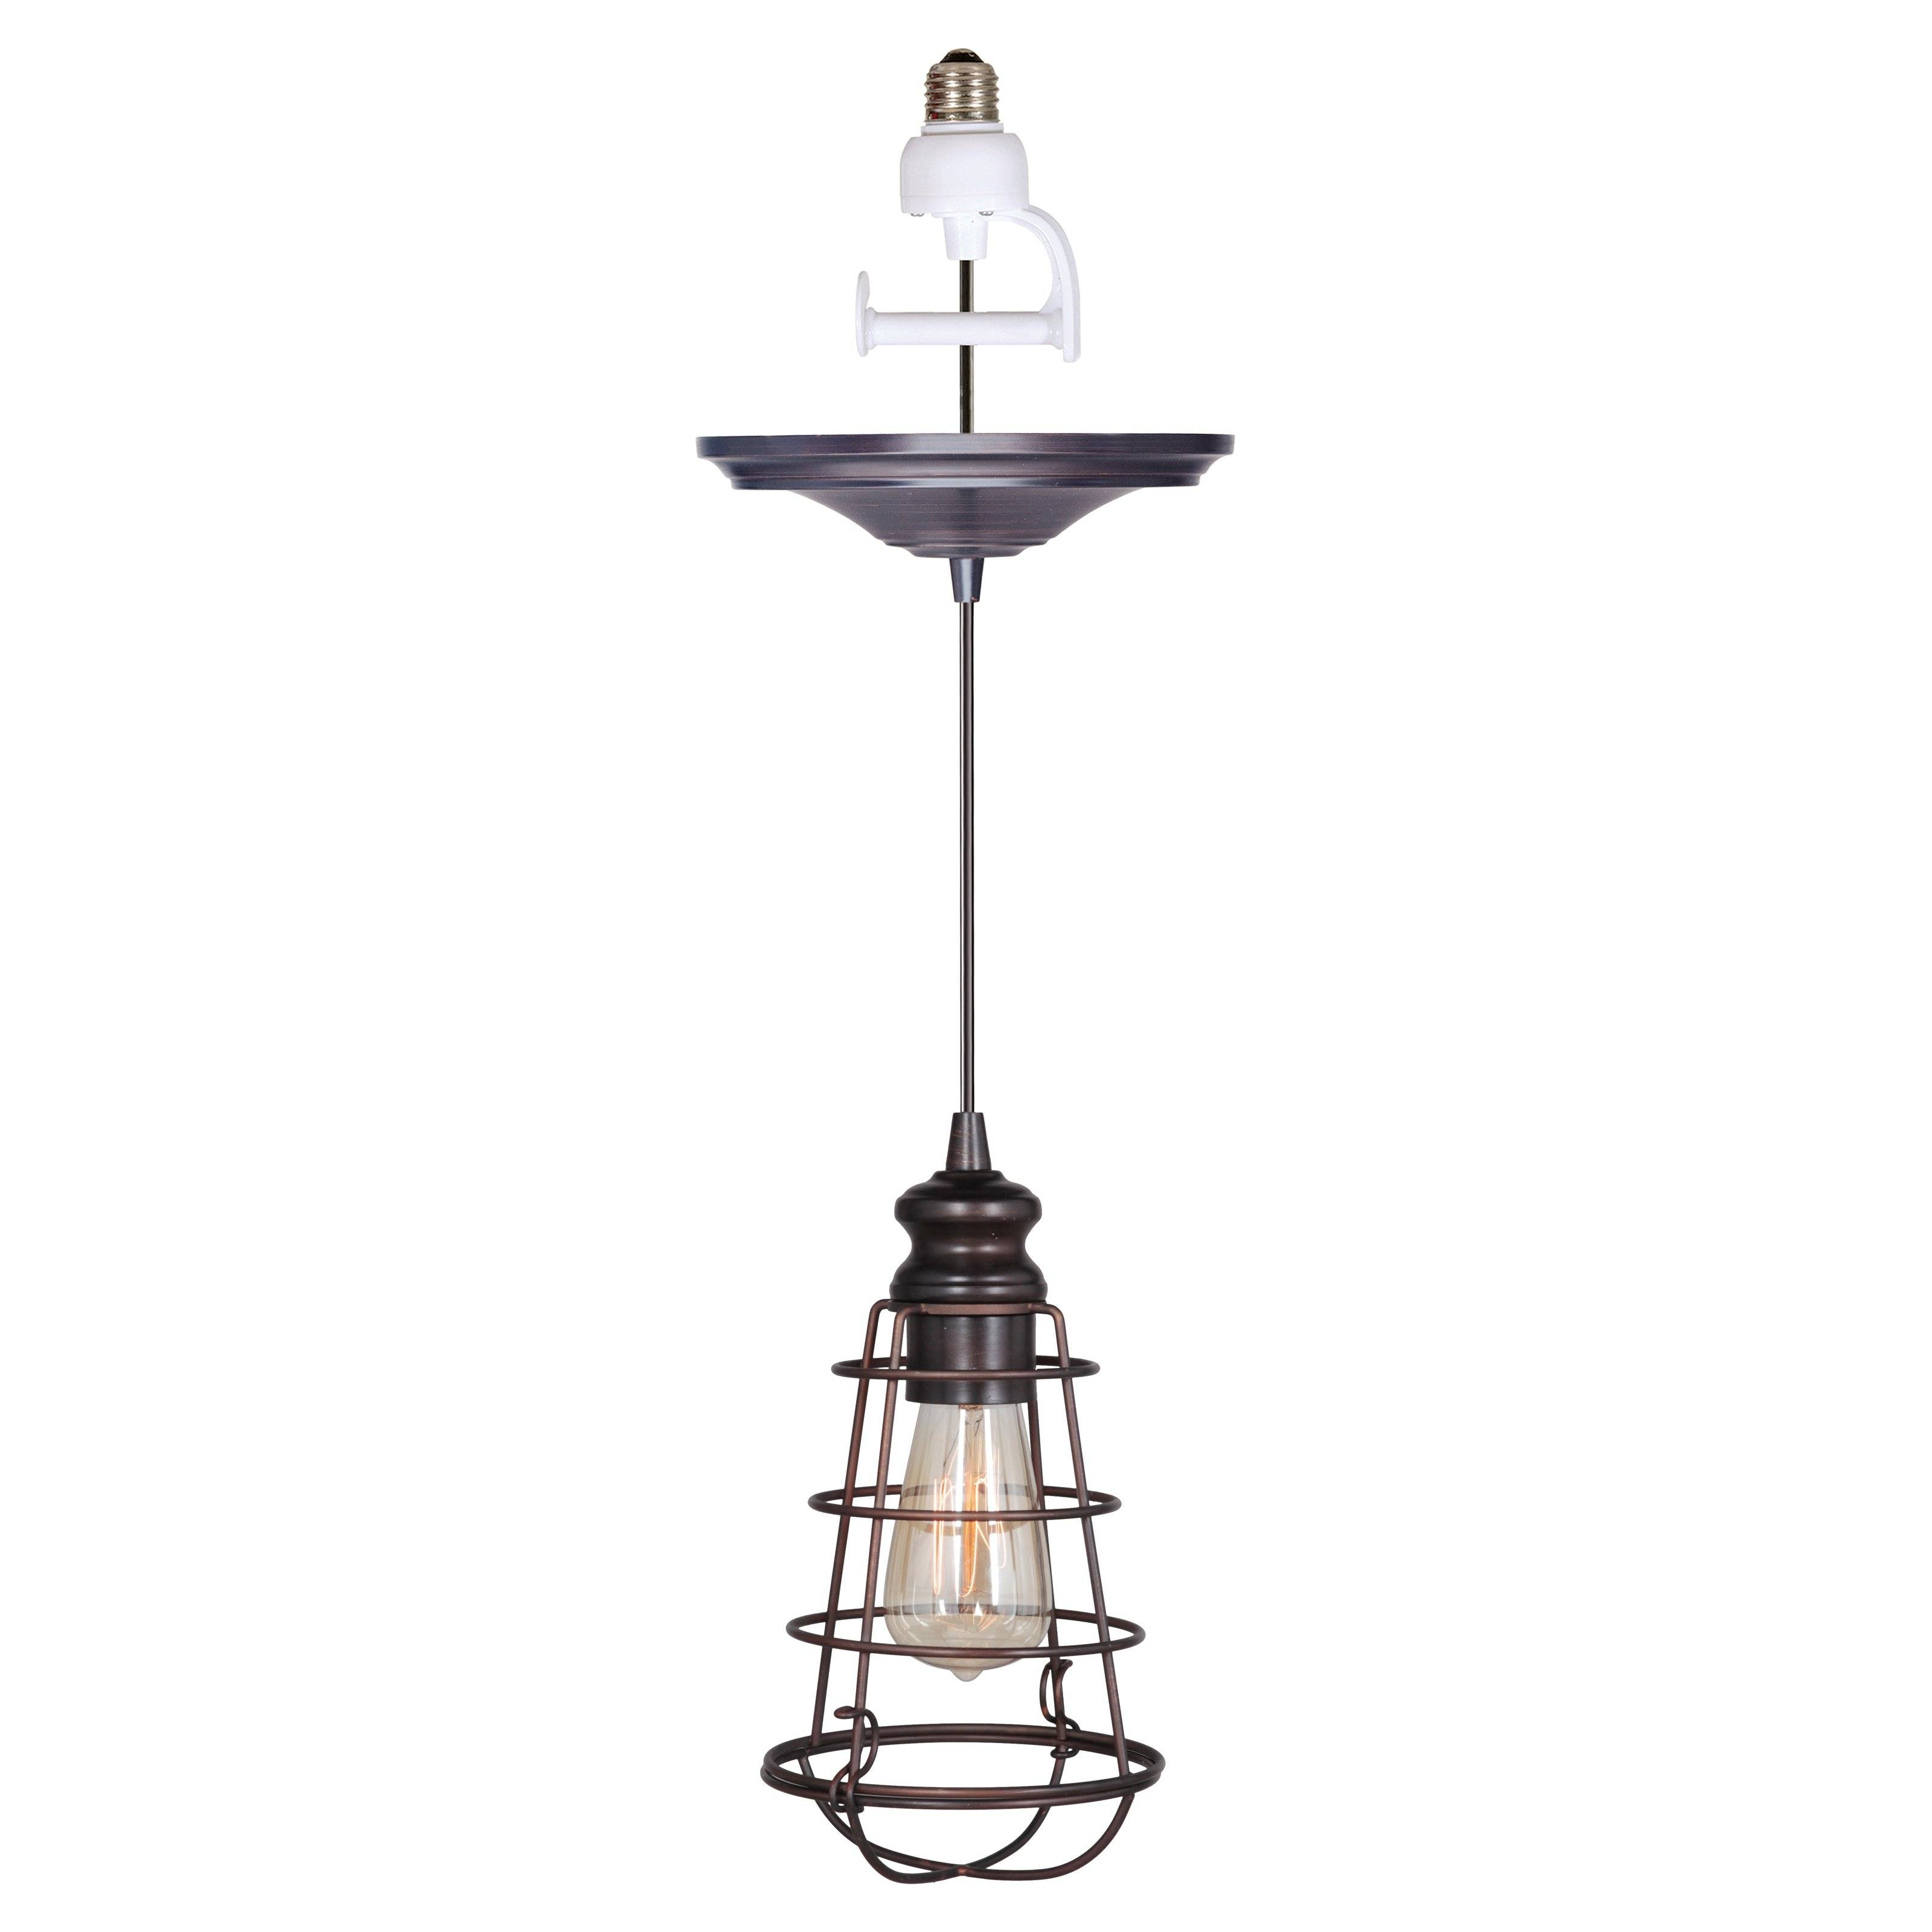 Worth Home Products Instant Screw In Pendant Light With Clear Intended For Screw In Pendant Lights Fixtures (View 14 of 15)